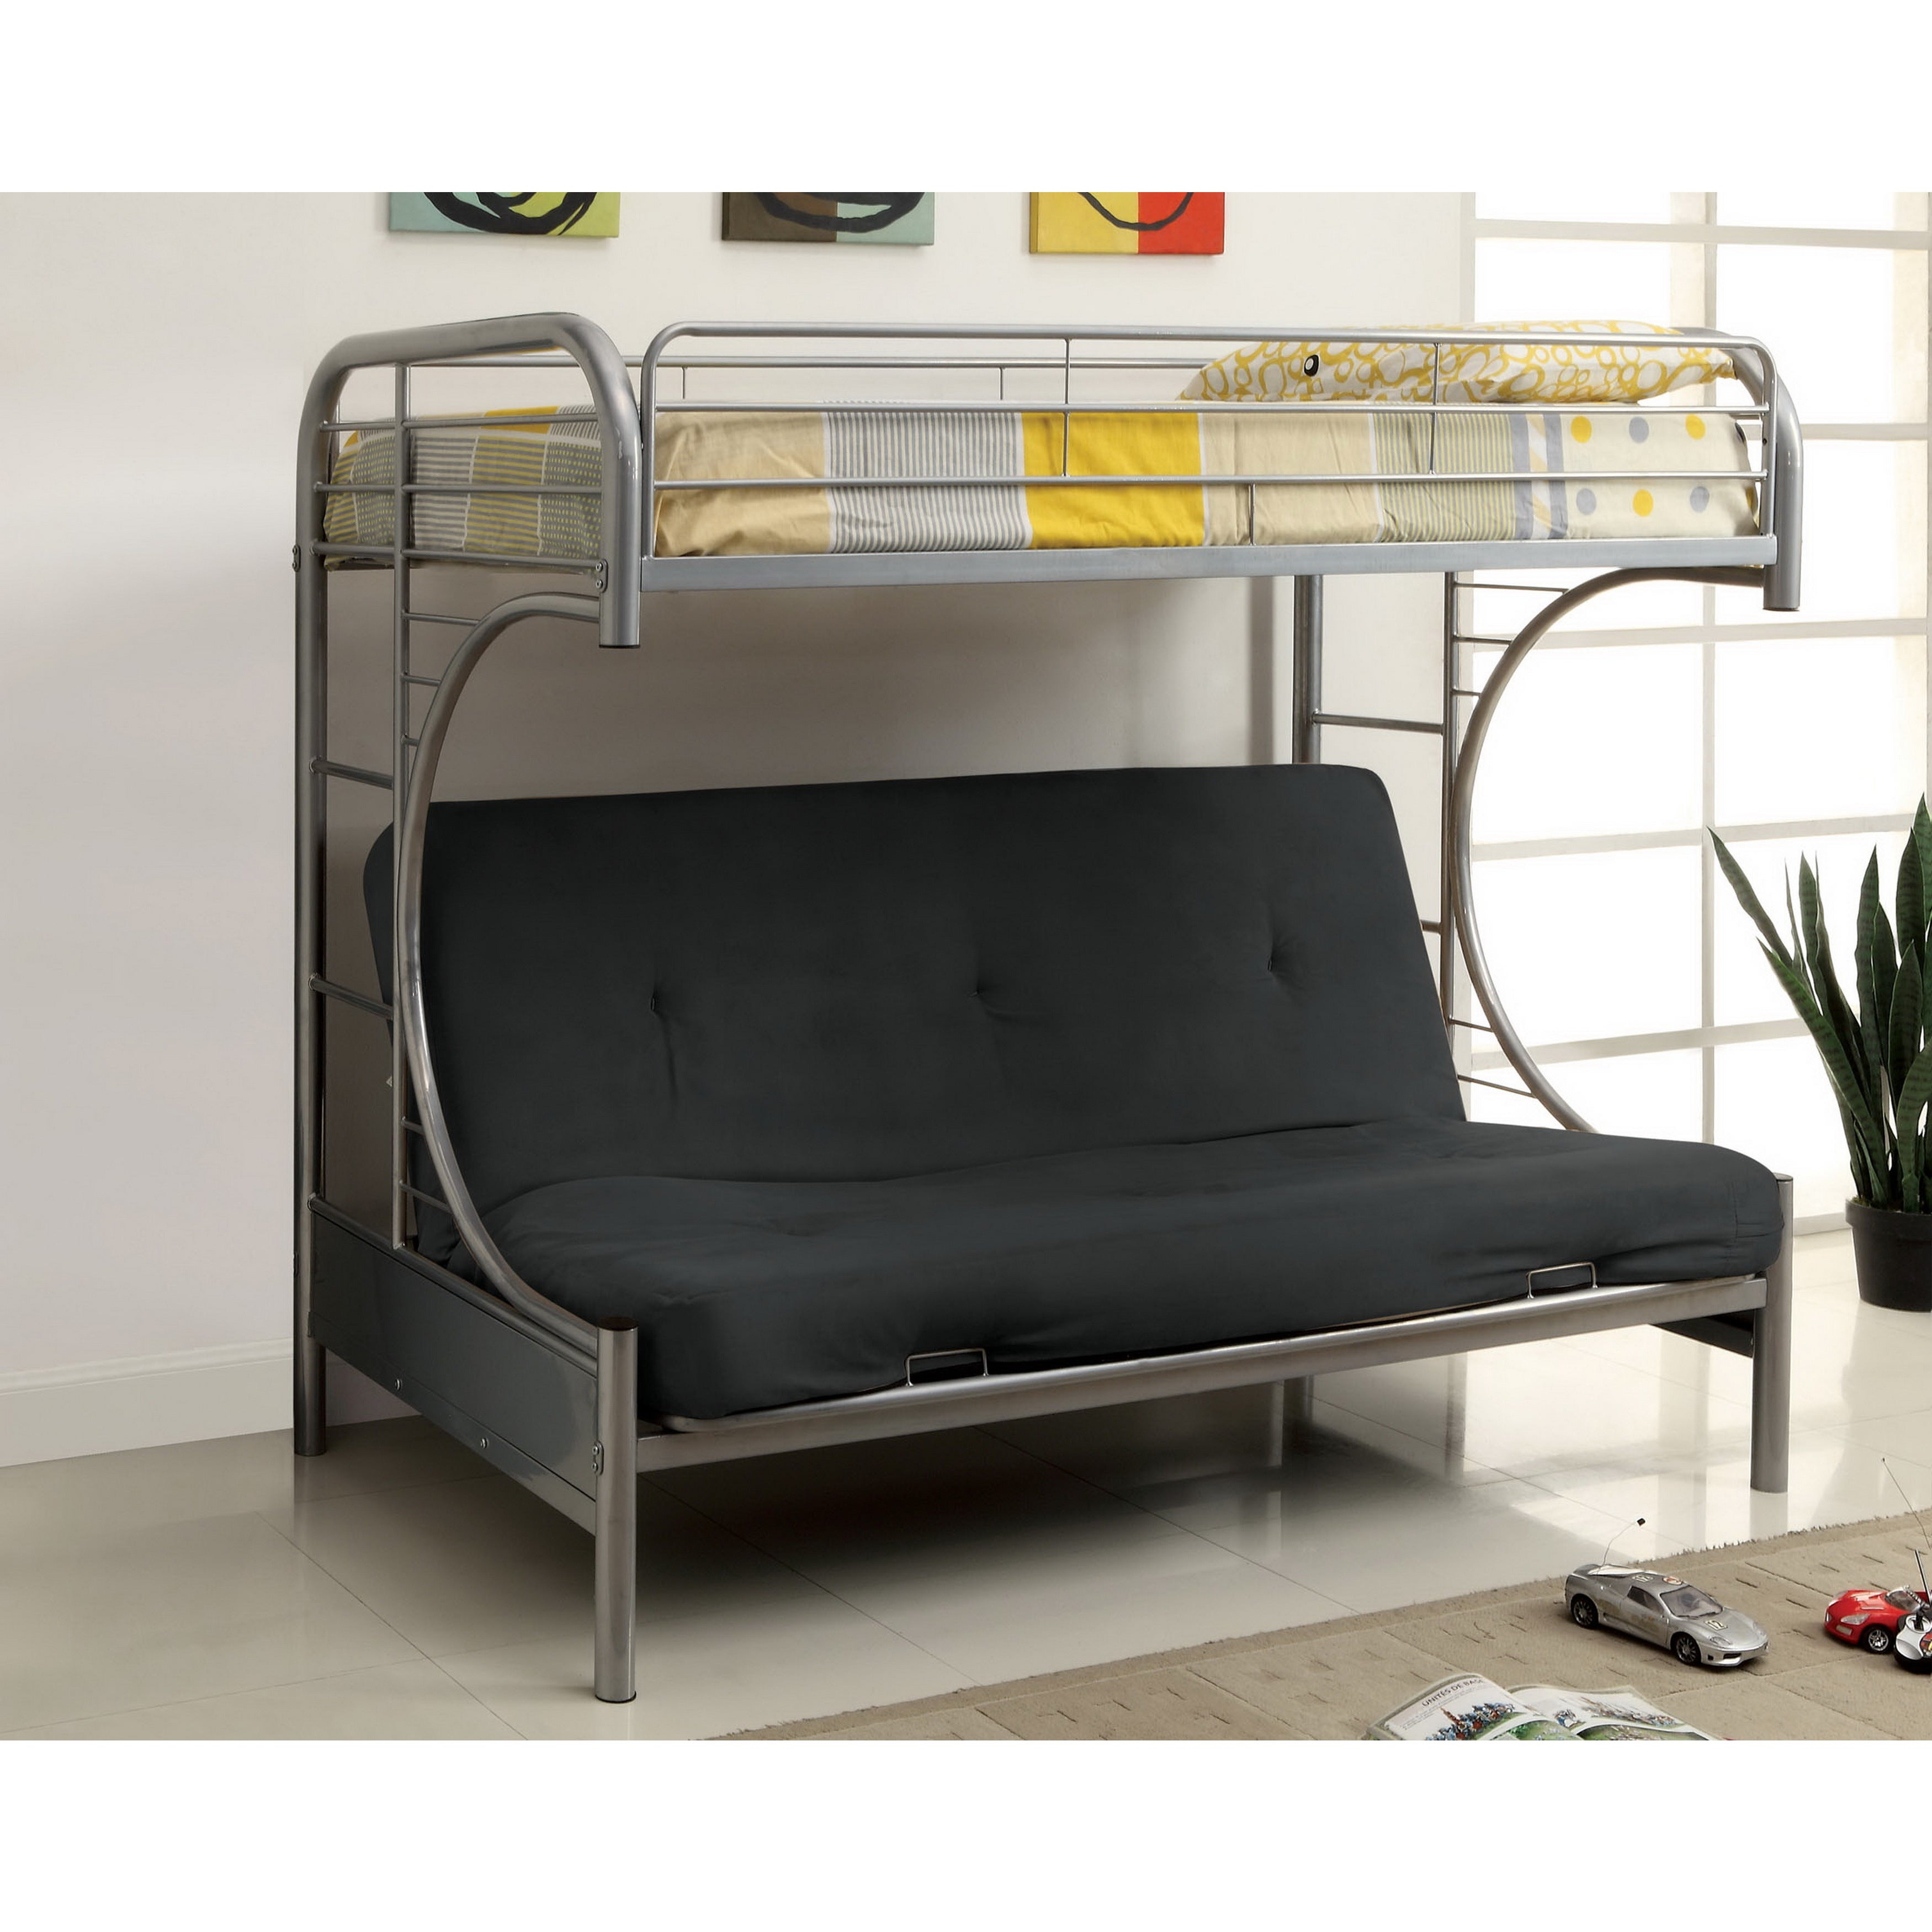 Shop Furniture Of America Linden Twin Over Futon Metal Bunk Bed